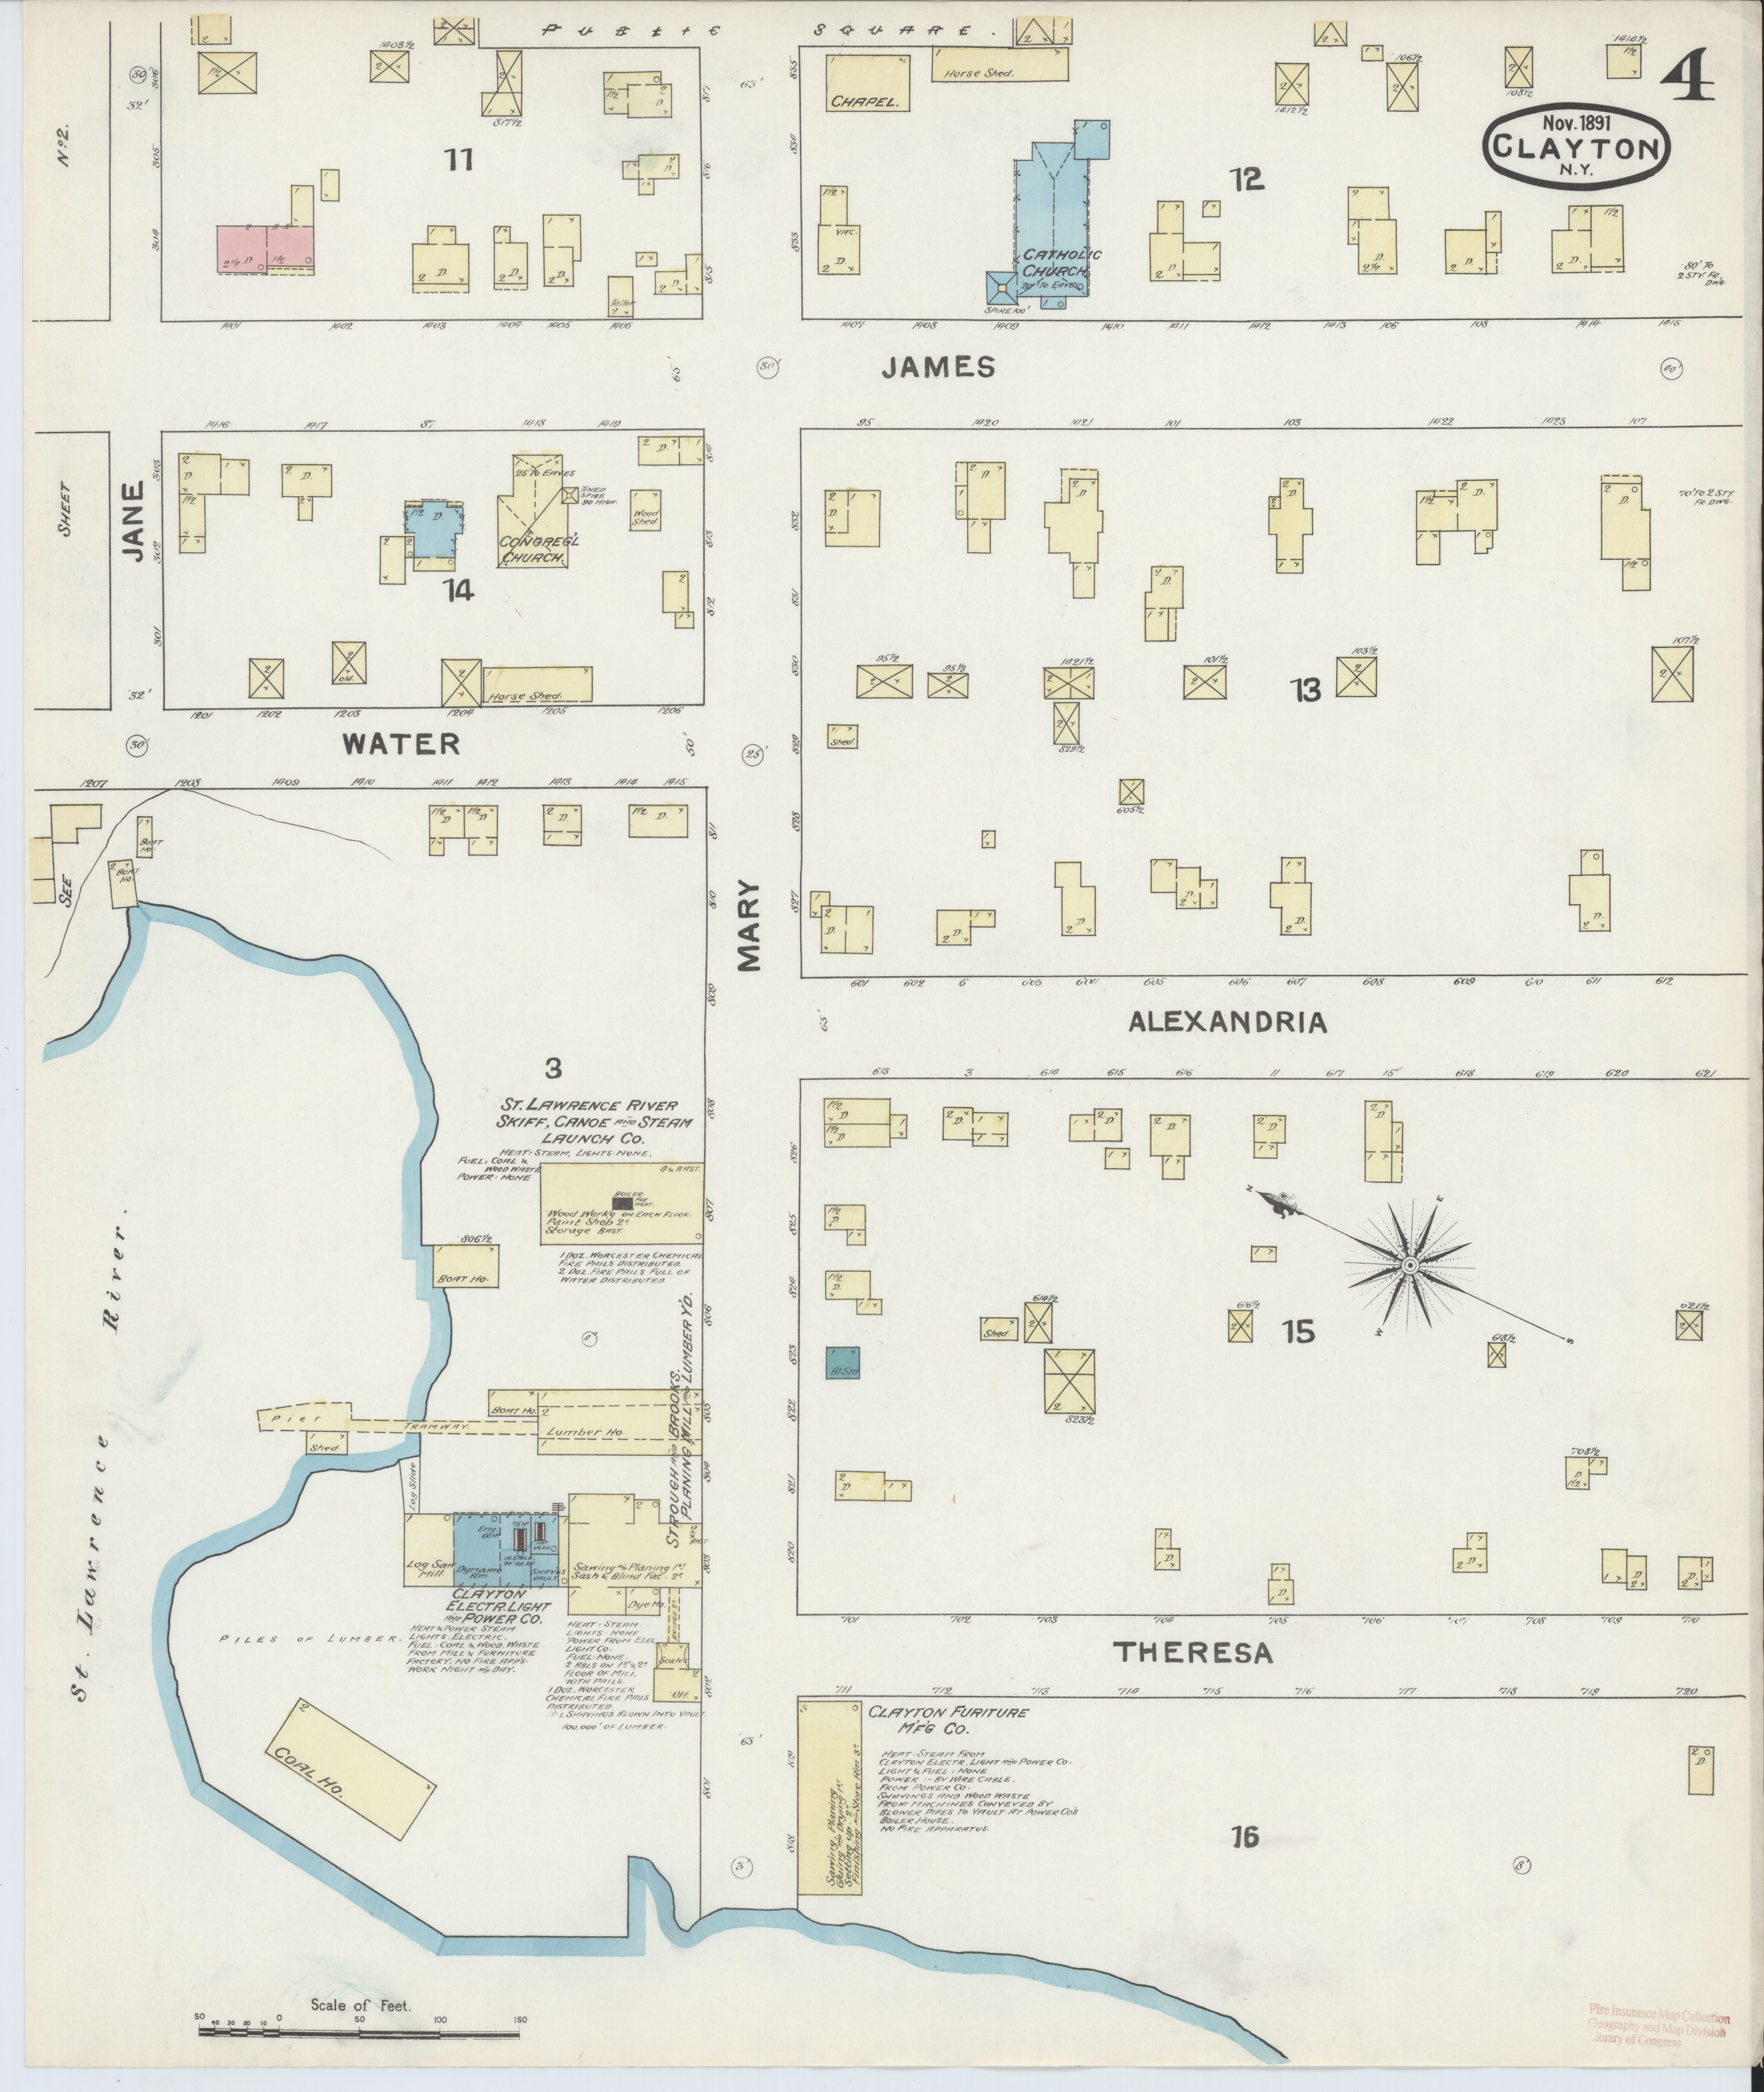 File:Sanborn Fire Insurance Map from Clayton, Jefferson County, New on